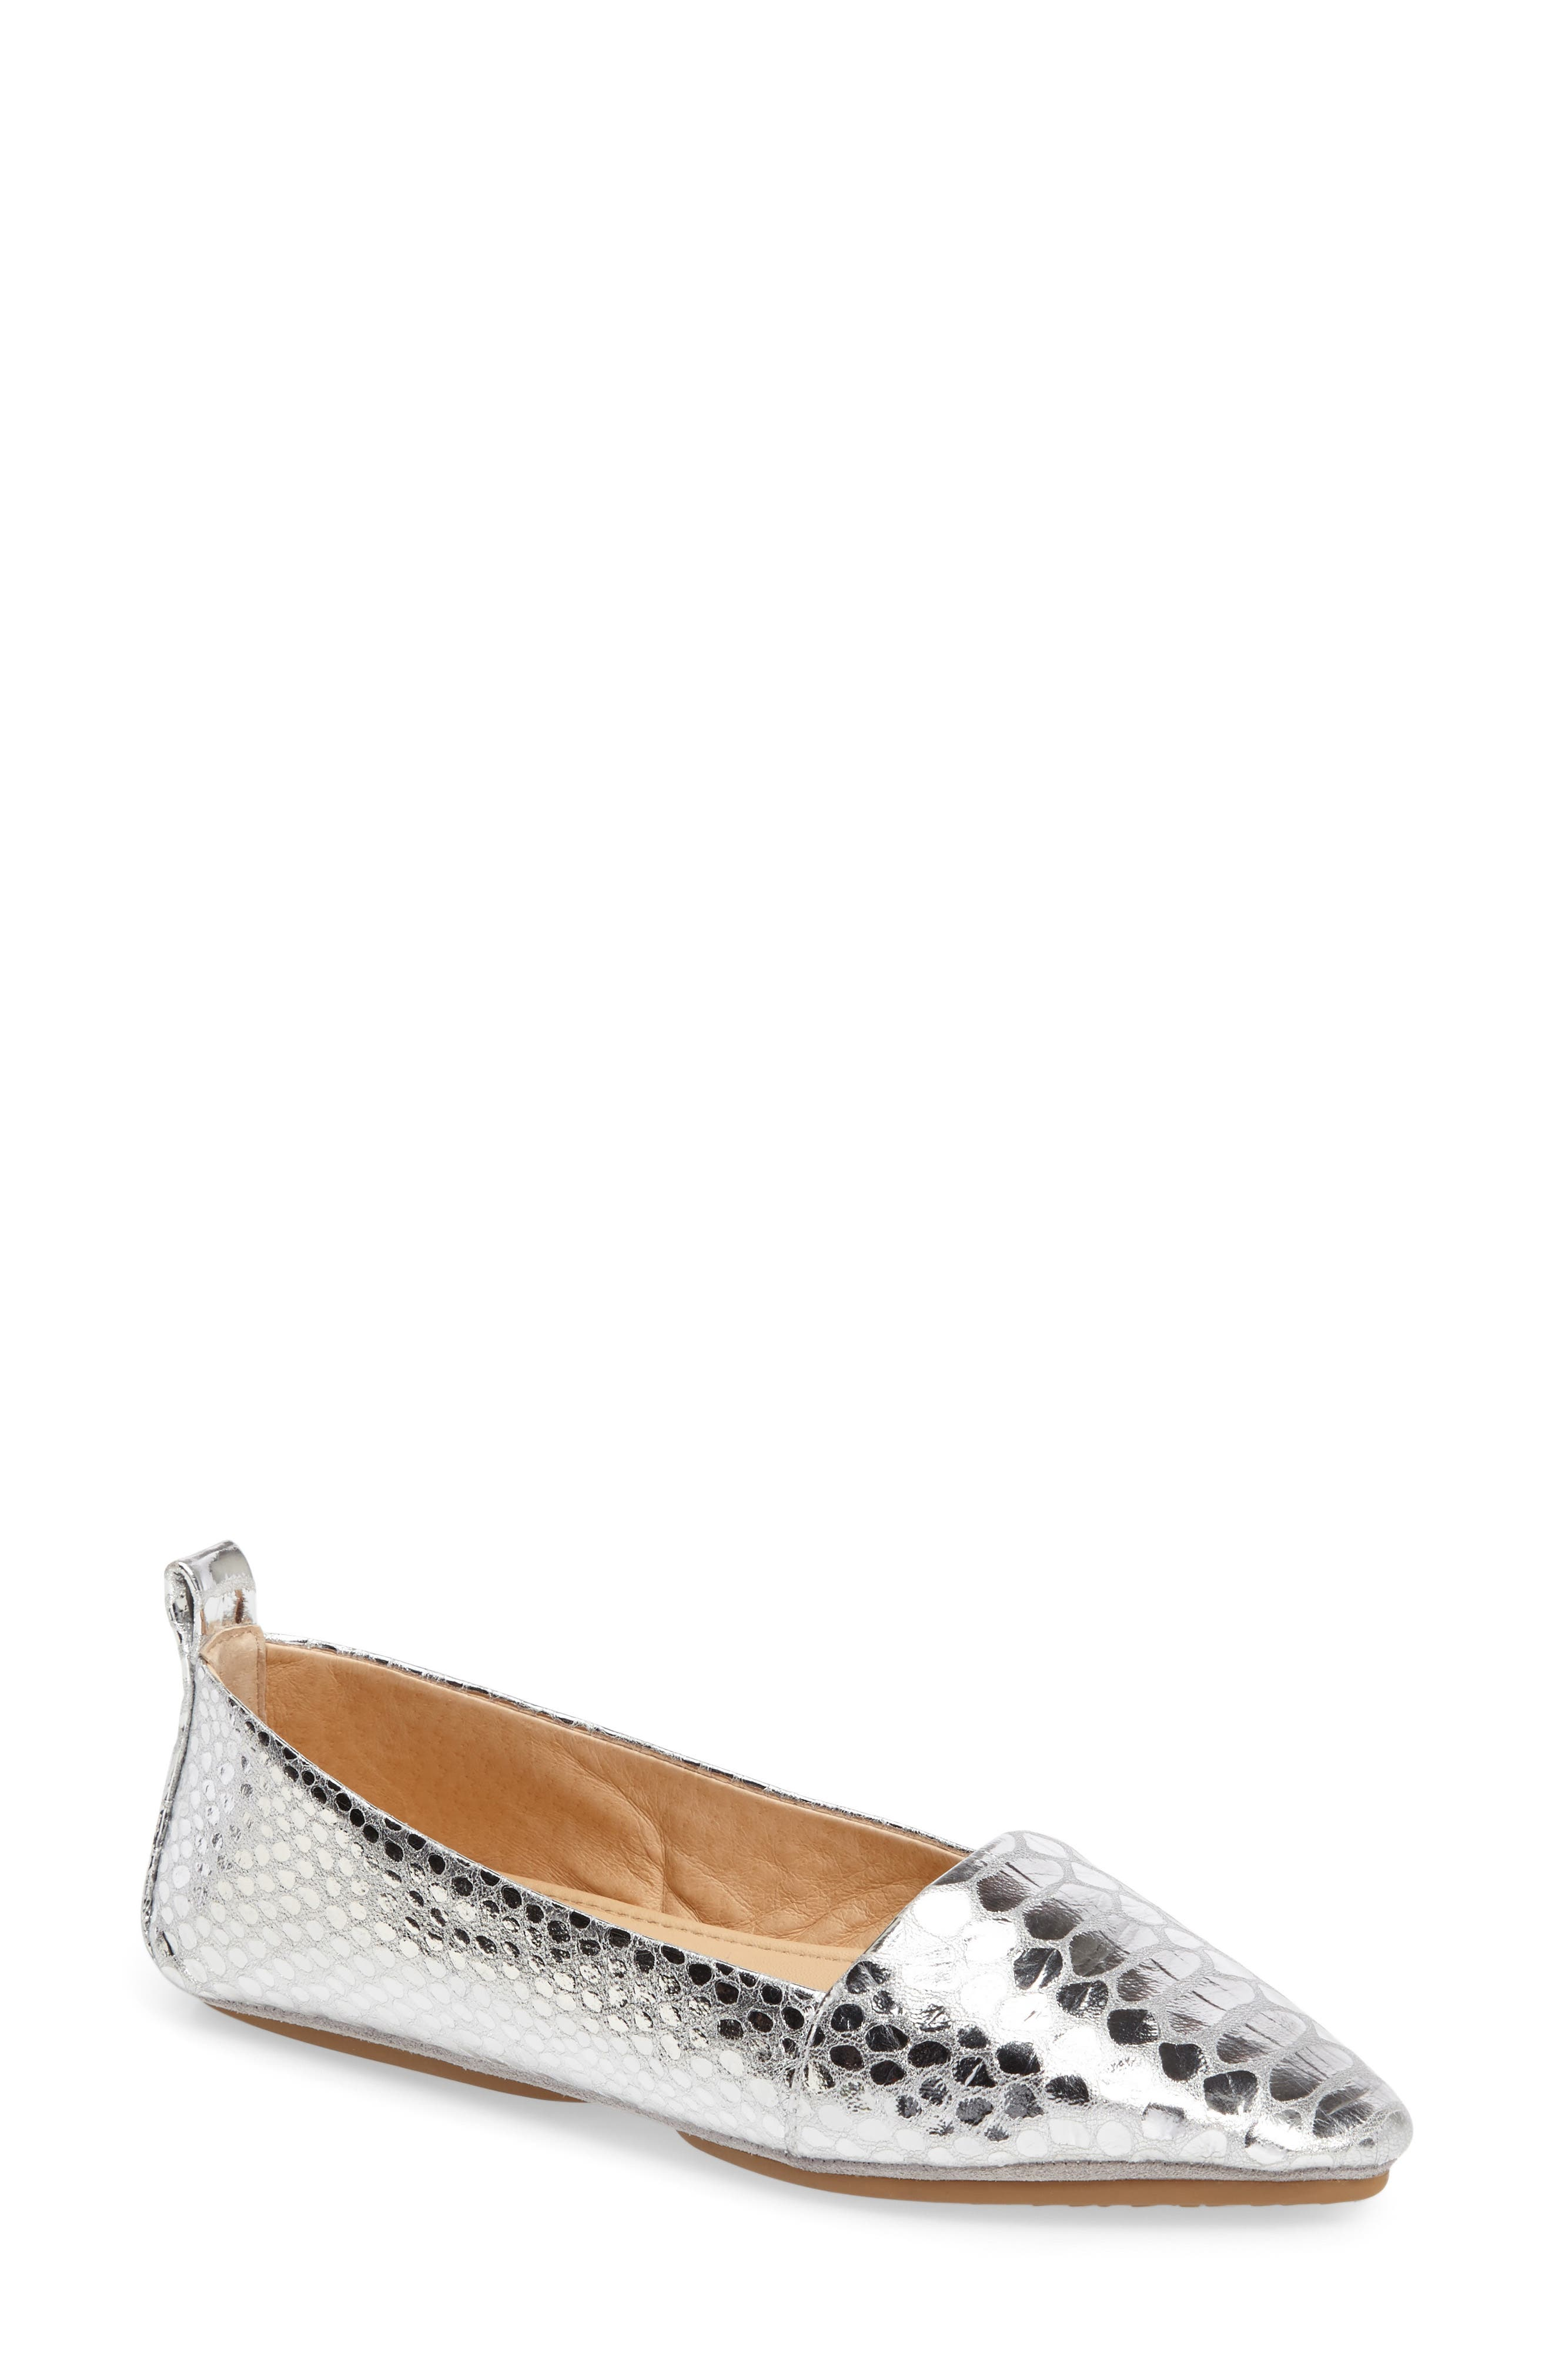 Vannah Flat,                         Main,                         color, Silver Leather